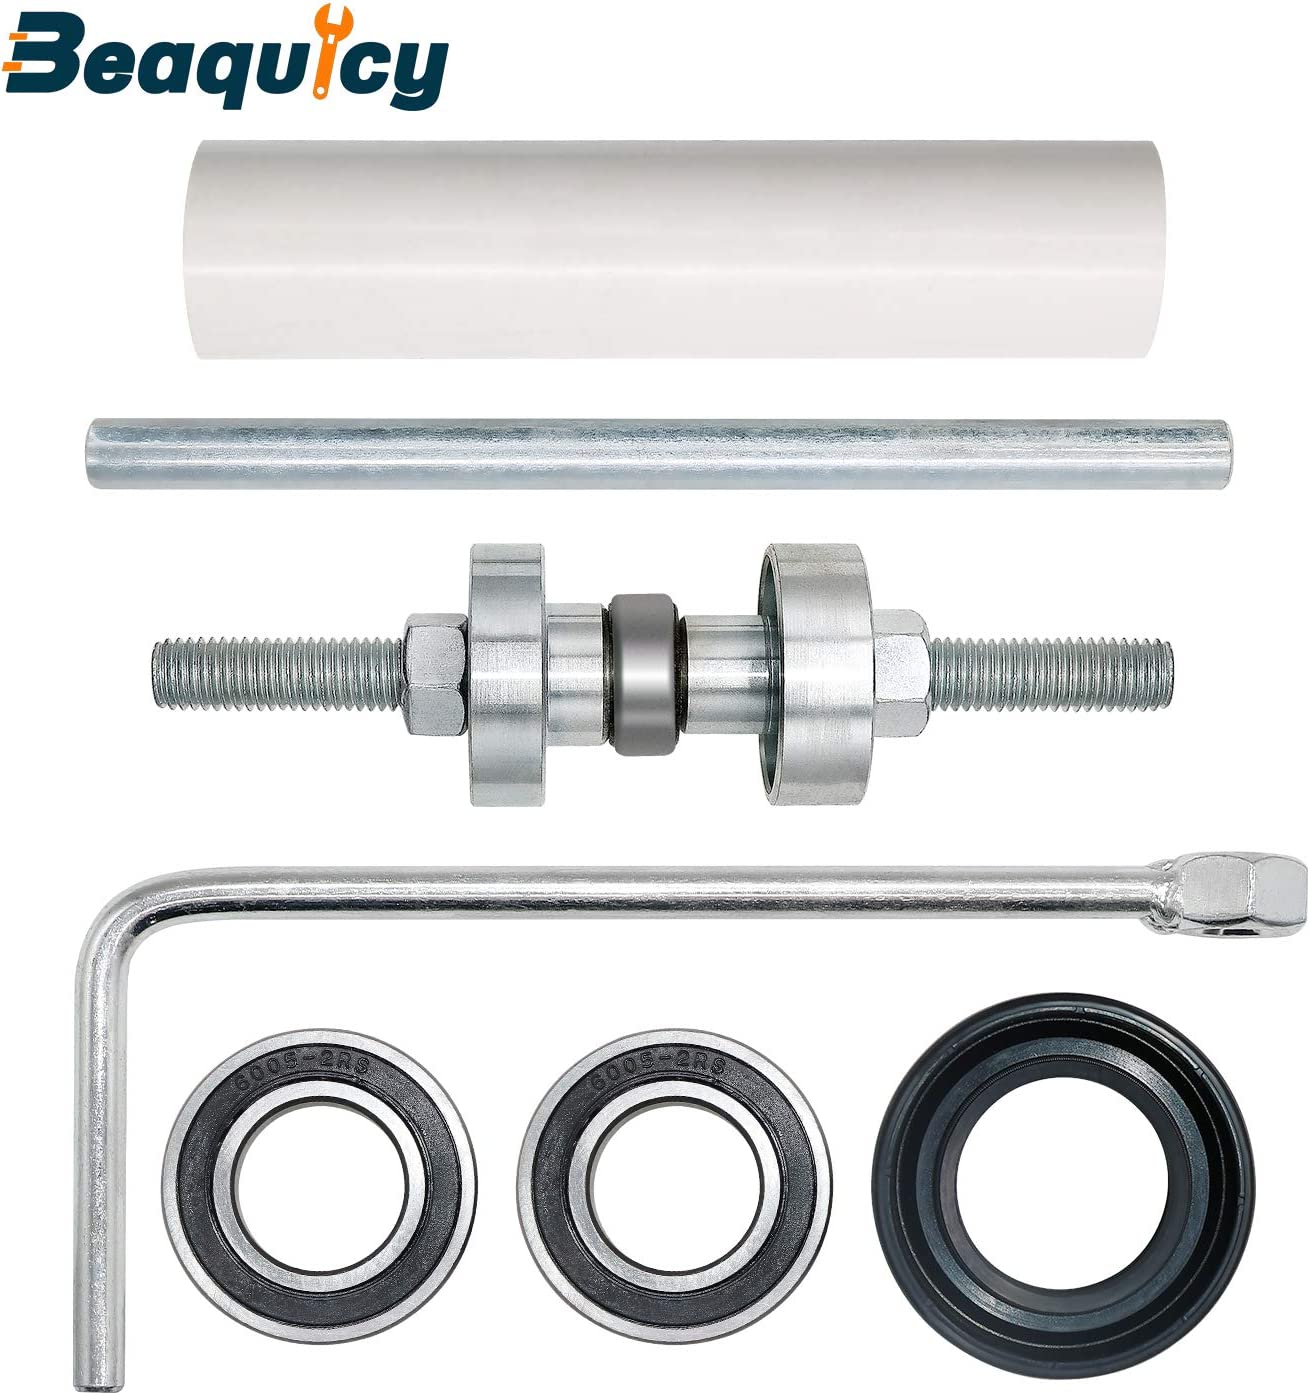 Beaquicy W10447783 Tub Bearing Installation & Removal Tool - Replacement for Kenmore Whirlpool Washer